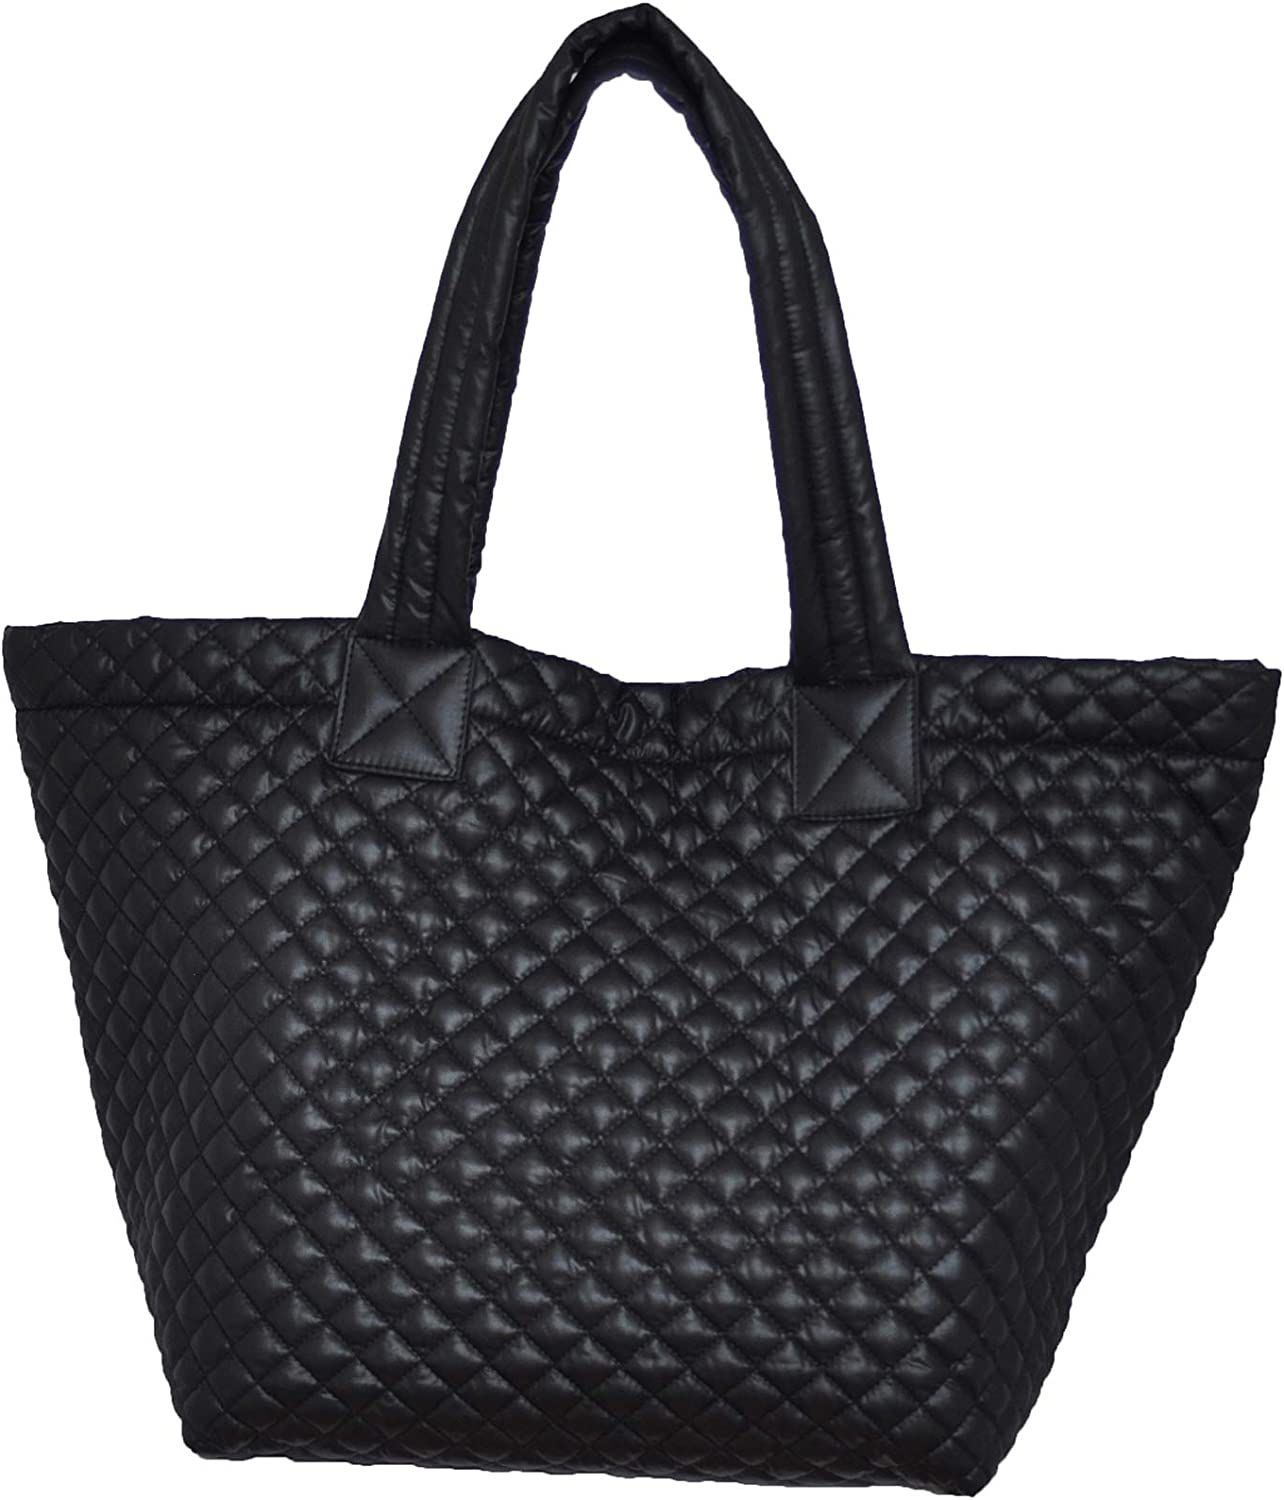 ClaraNY Comfortable Light weight quilted Tote with pouch Water Repellent Black